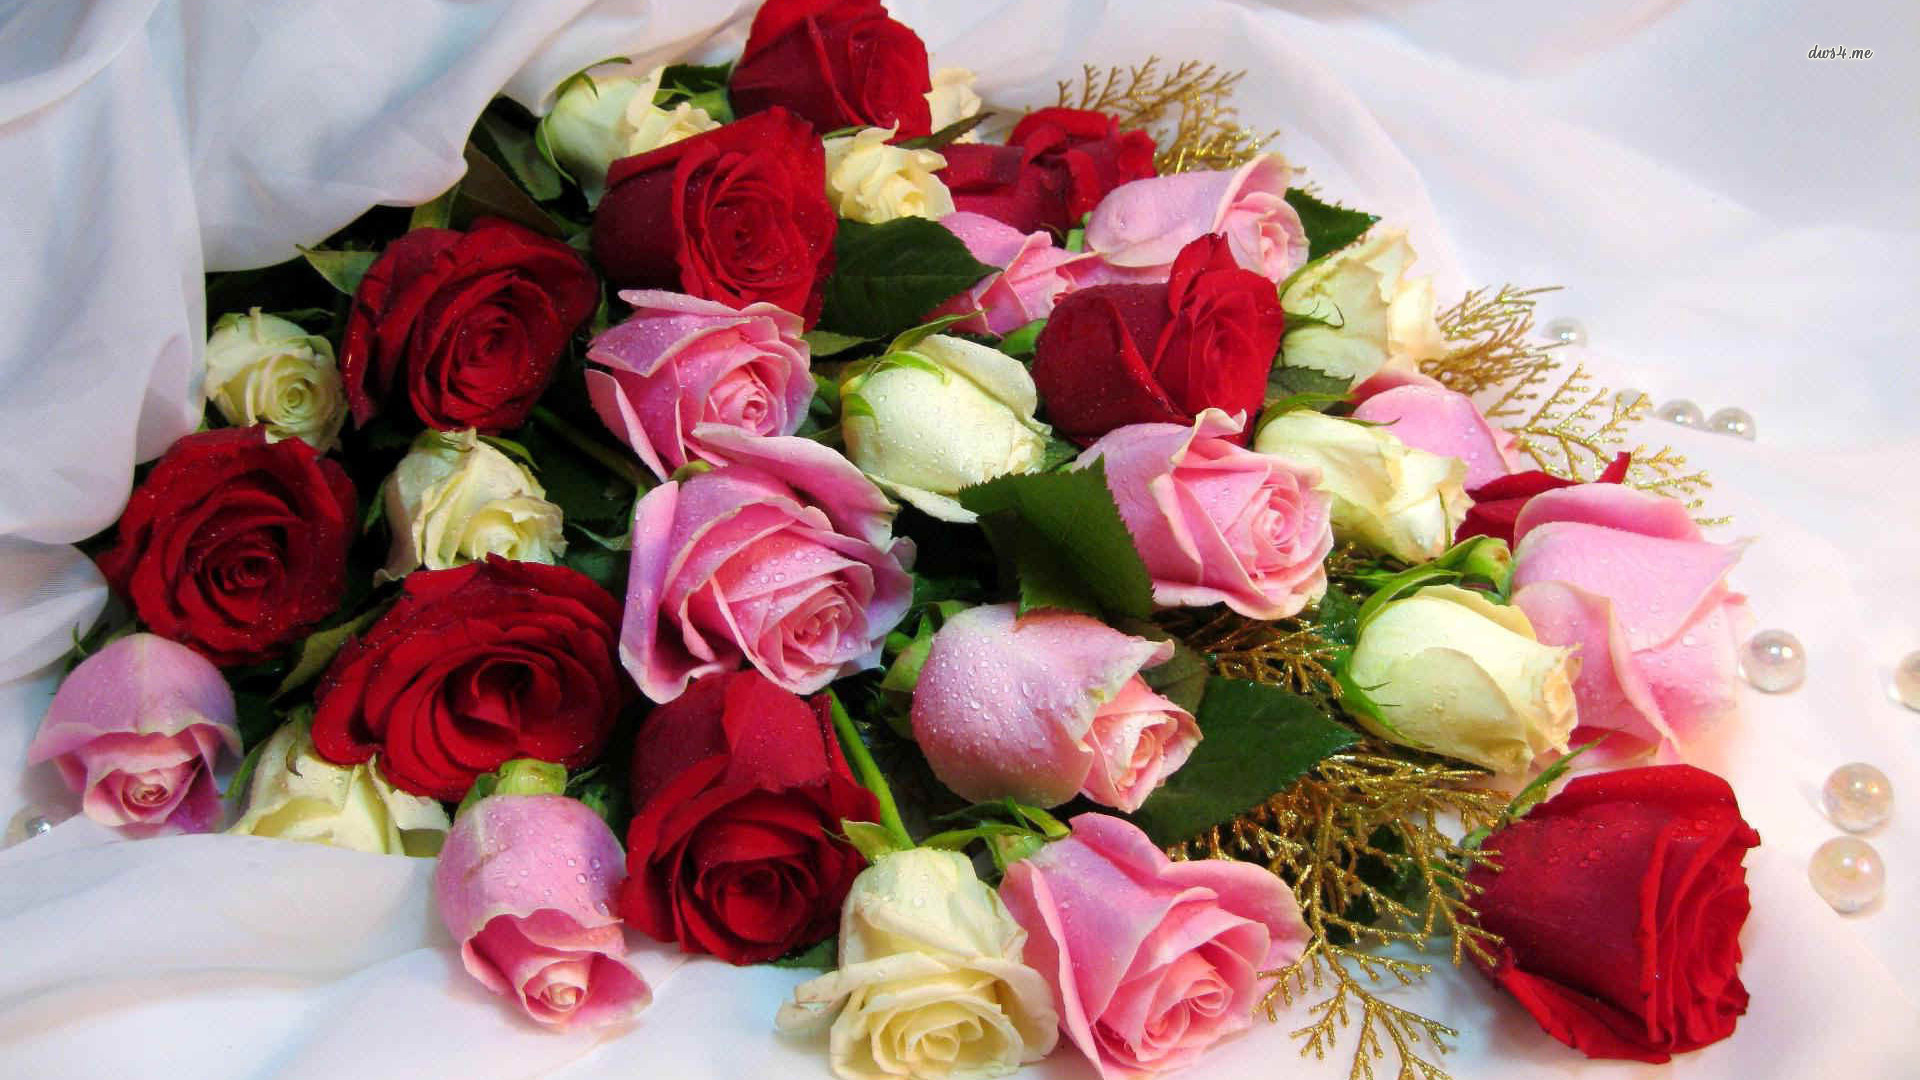 Picture Of Flowers Rose Bouquets Wallpaper | FlowerHDWallpaper